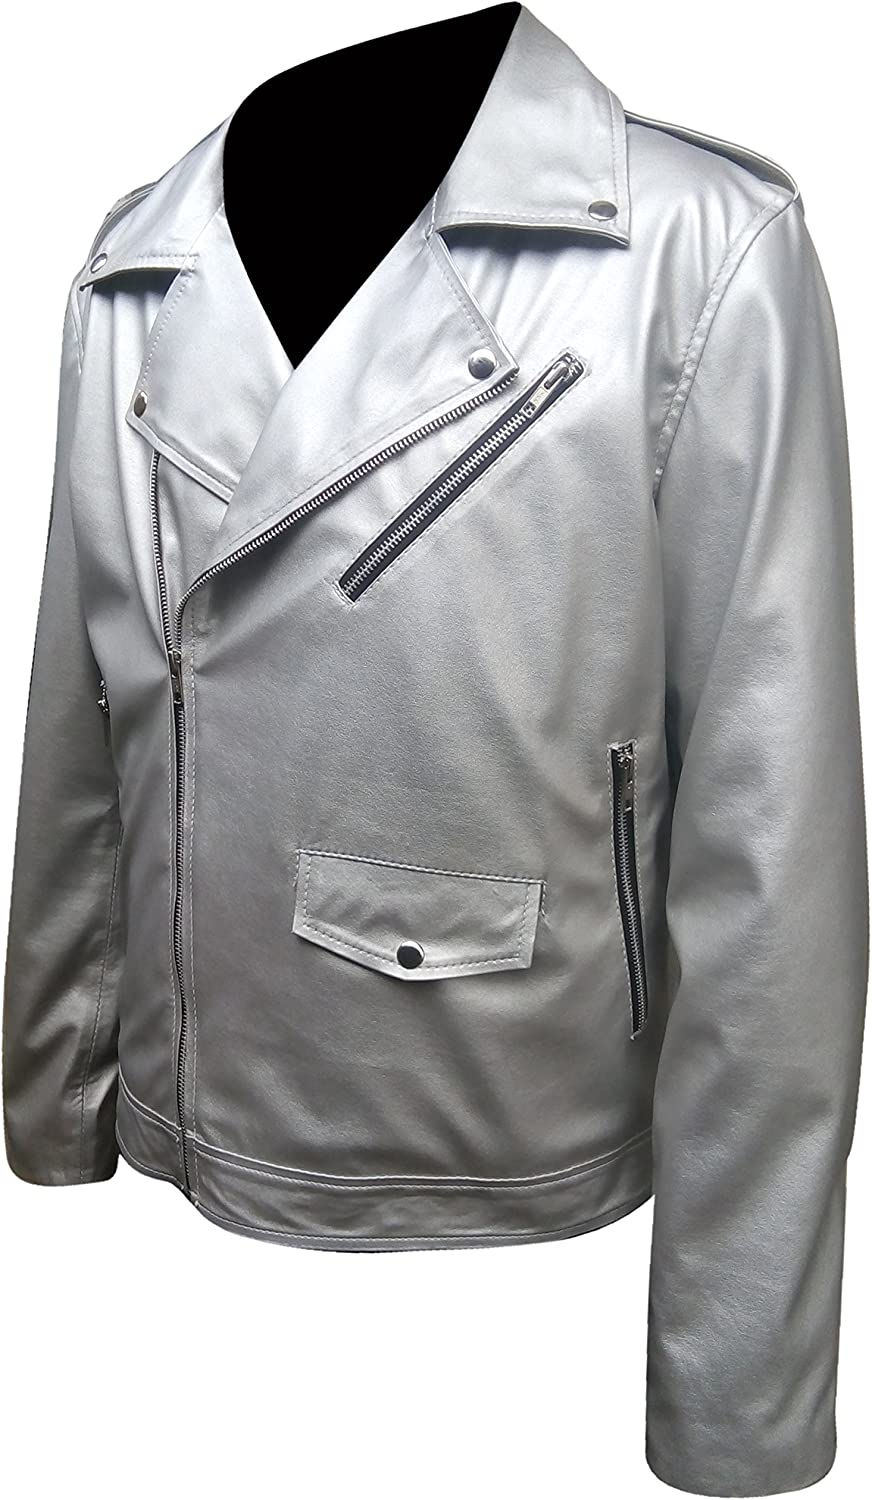 e-clothing2018 Genuine Leather Jacket for Mens White Color